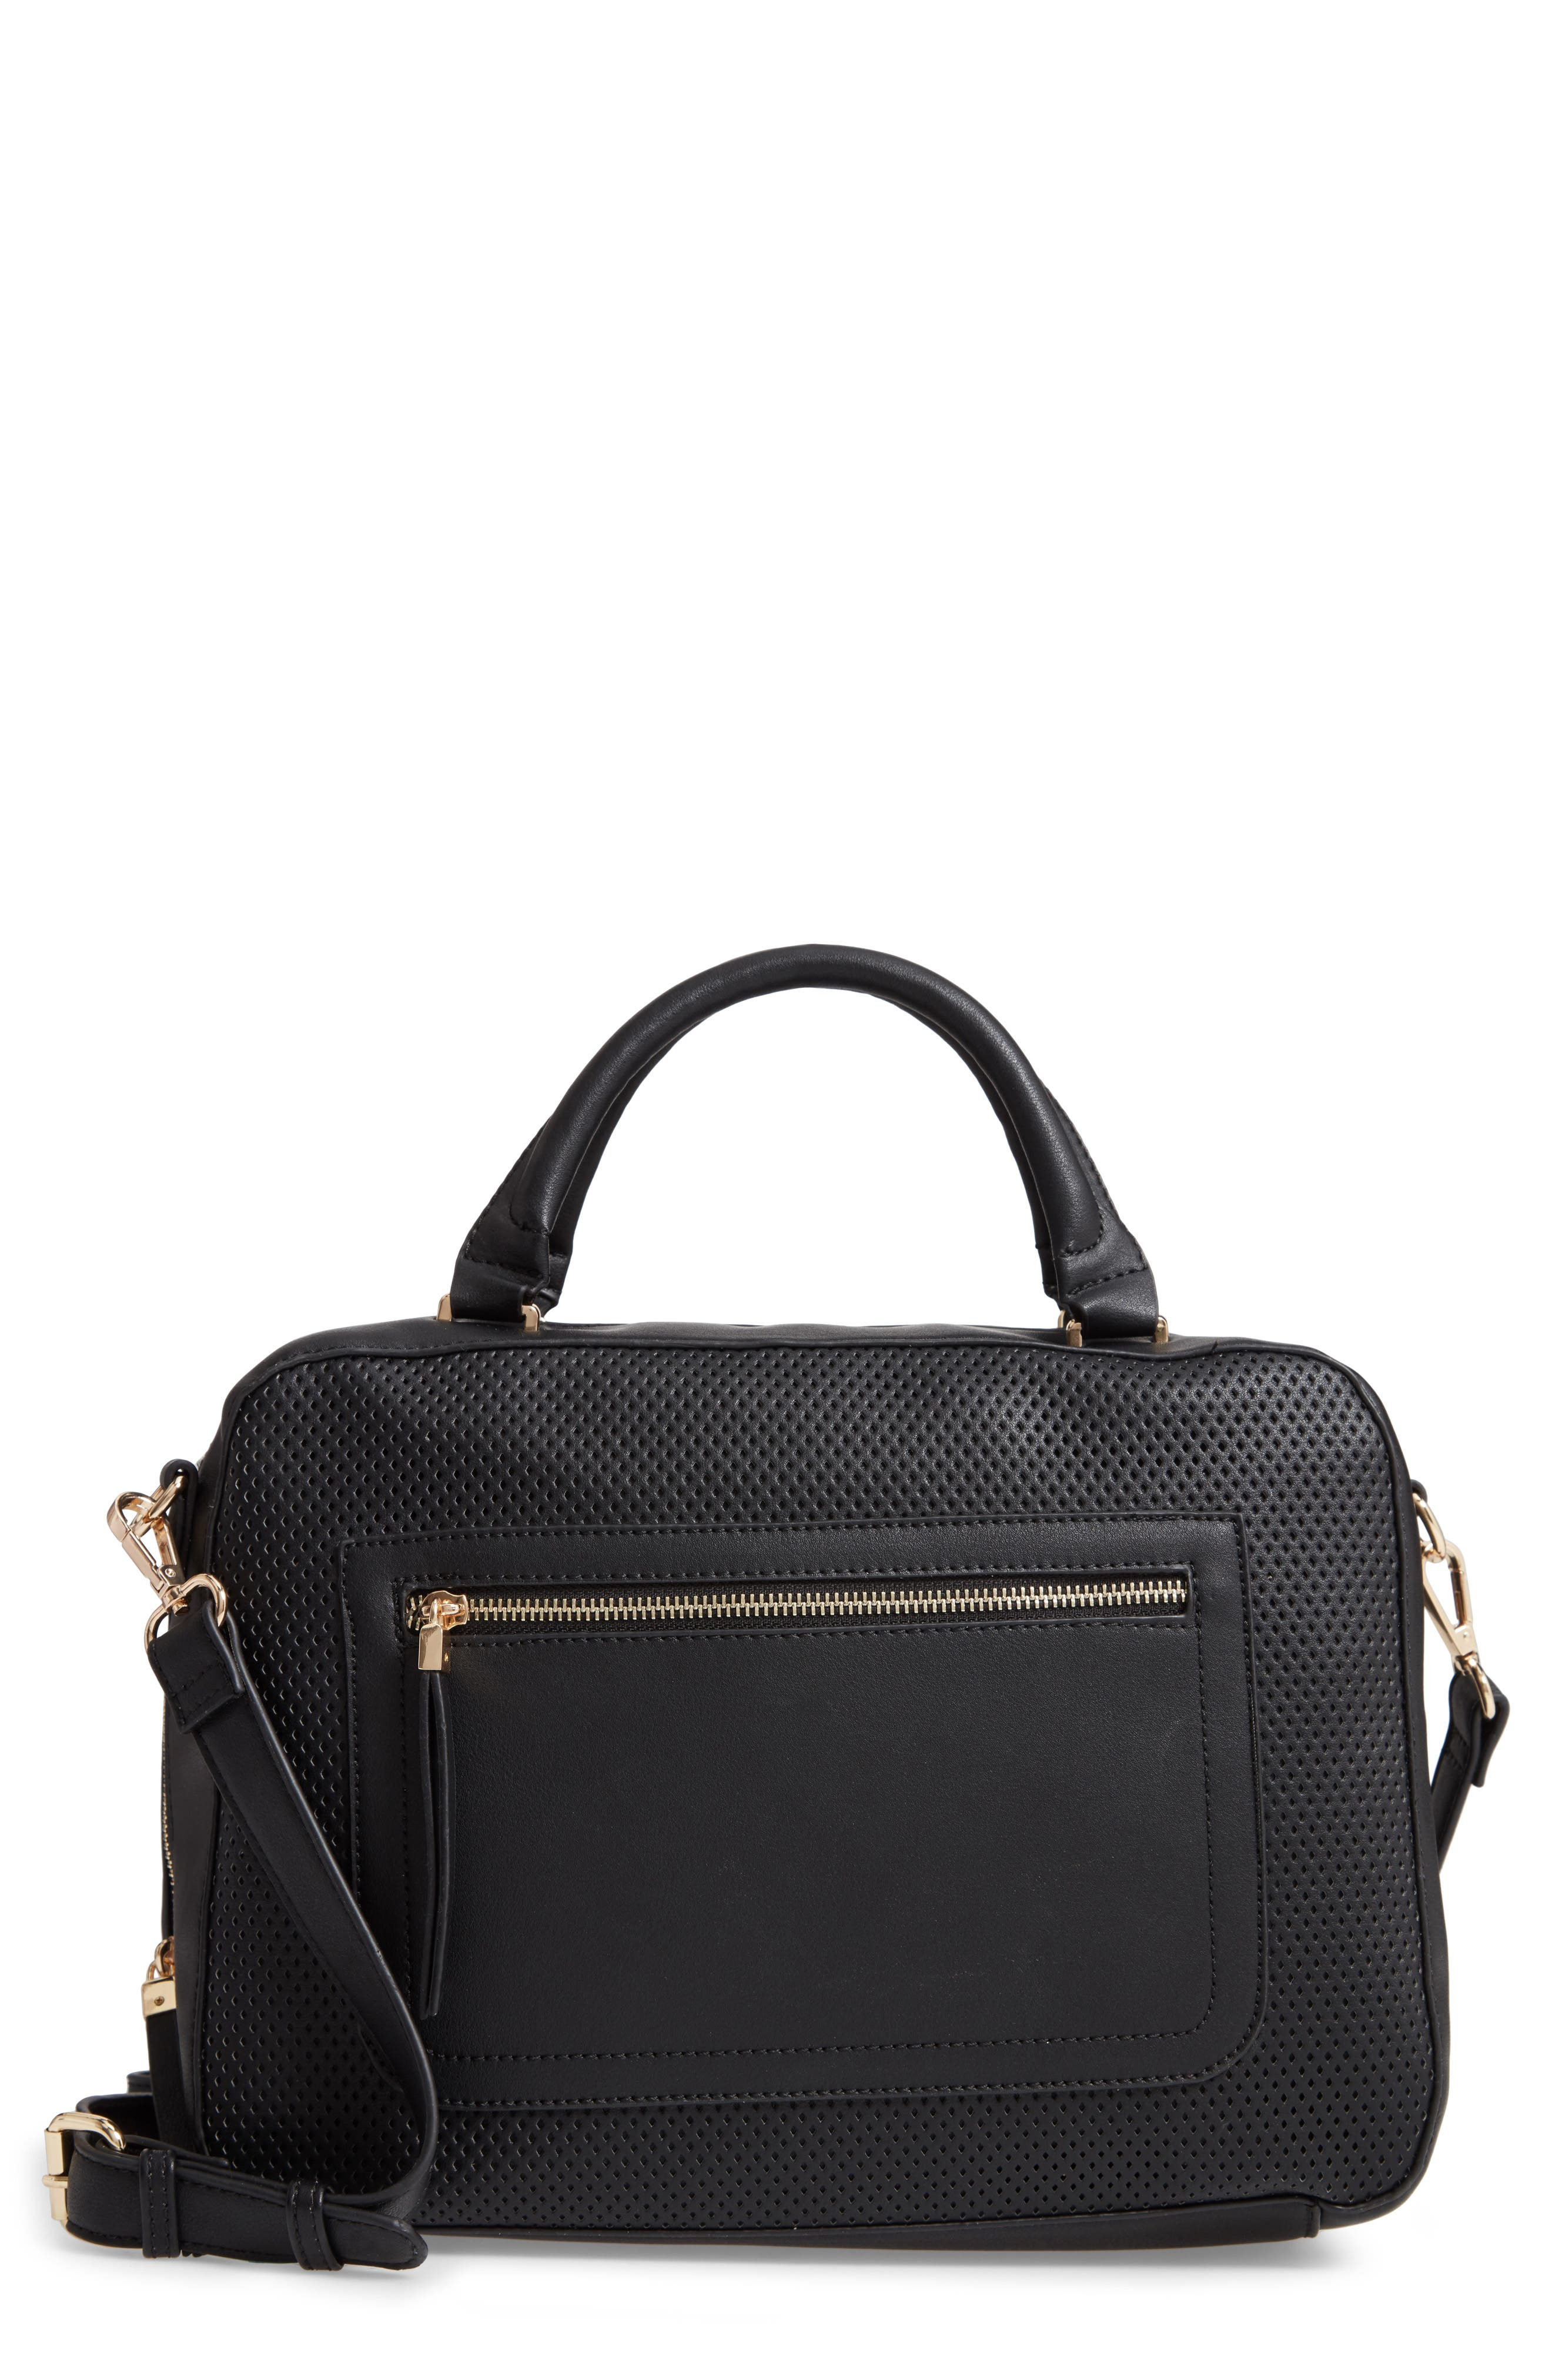 Kaylee Perforated Faux Leather Satchel,                         Main,                         color, 001